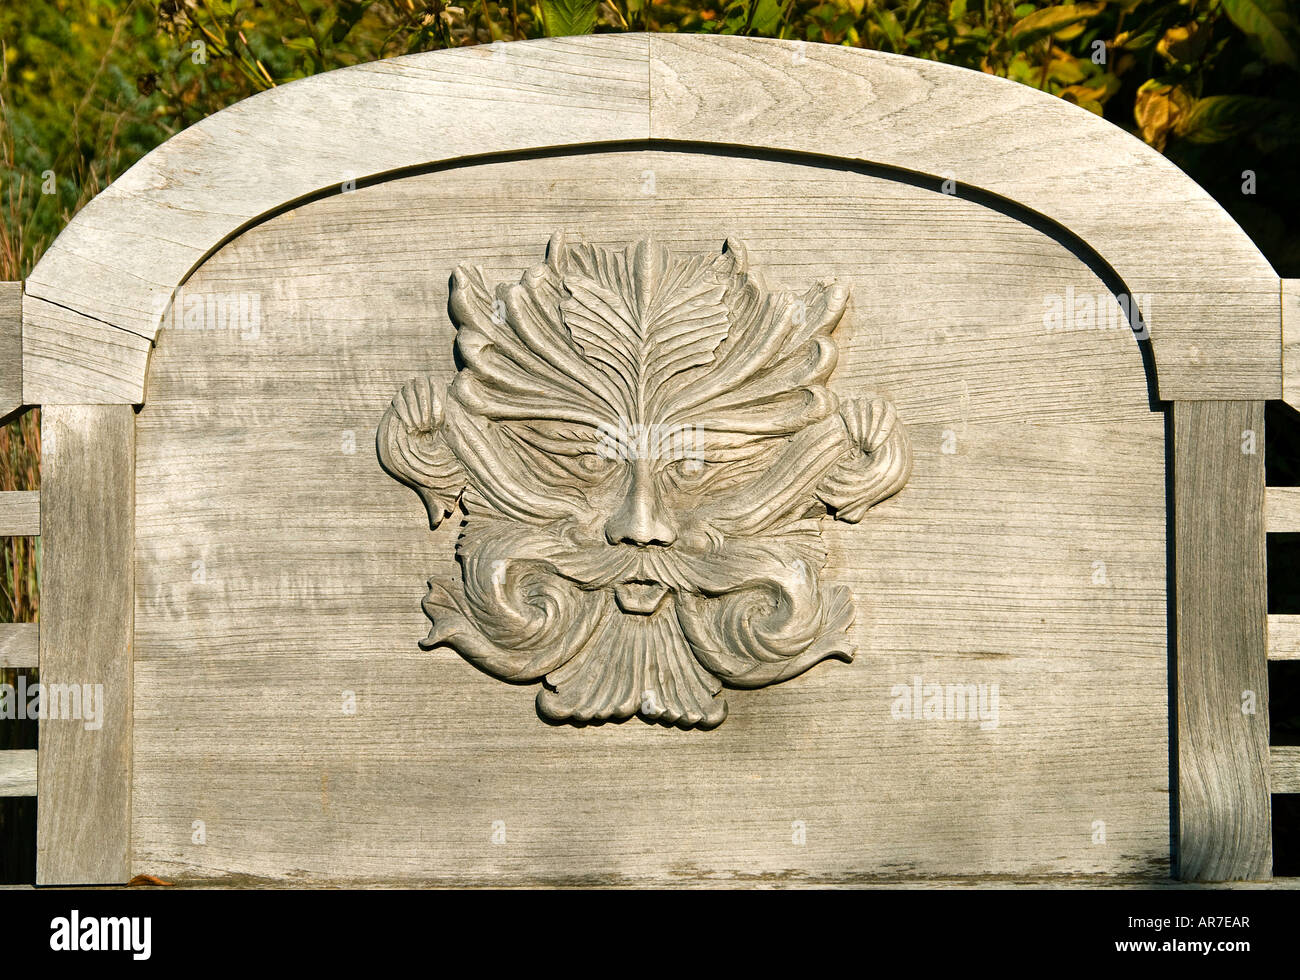 Wood carving in bench backrest stock photo: 15963934 alamy